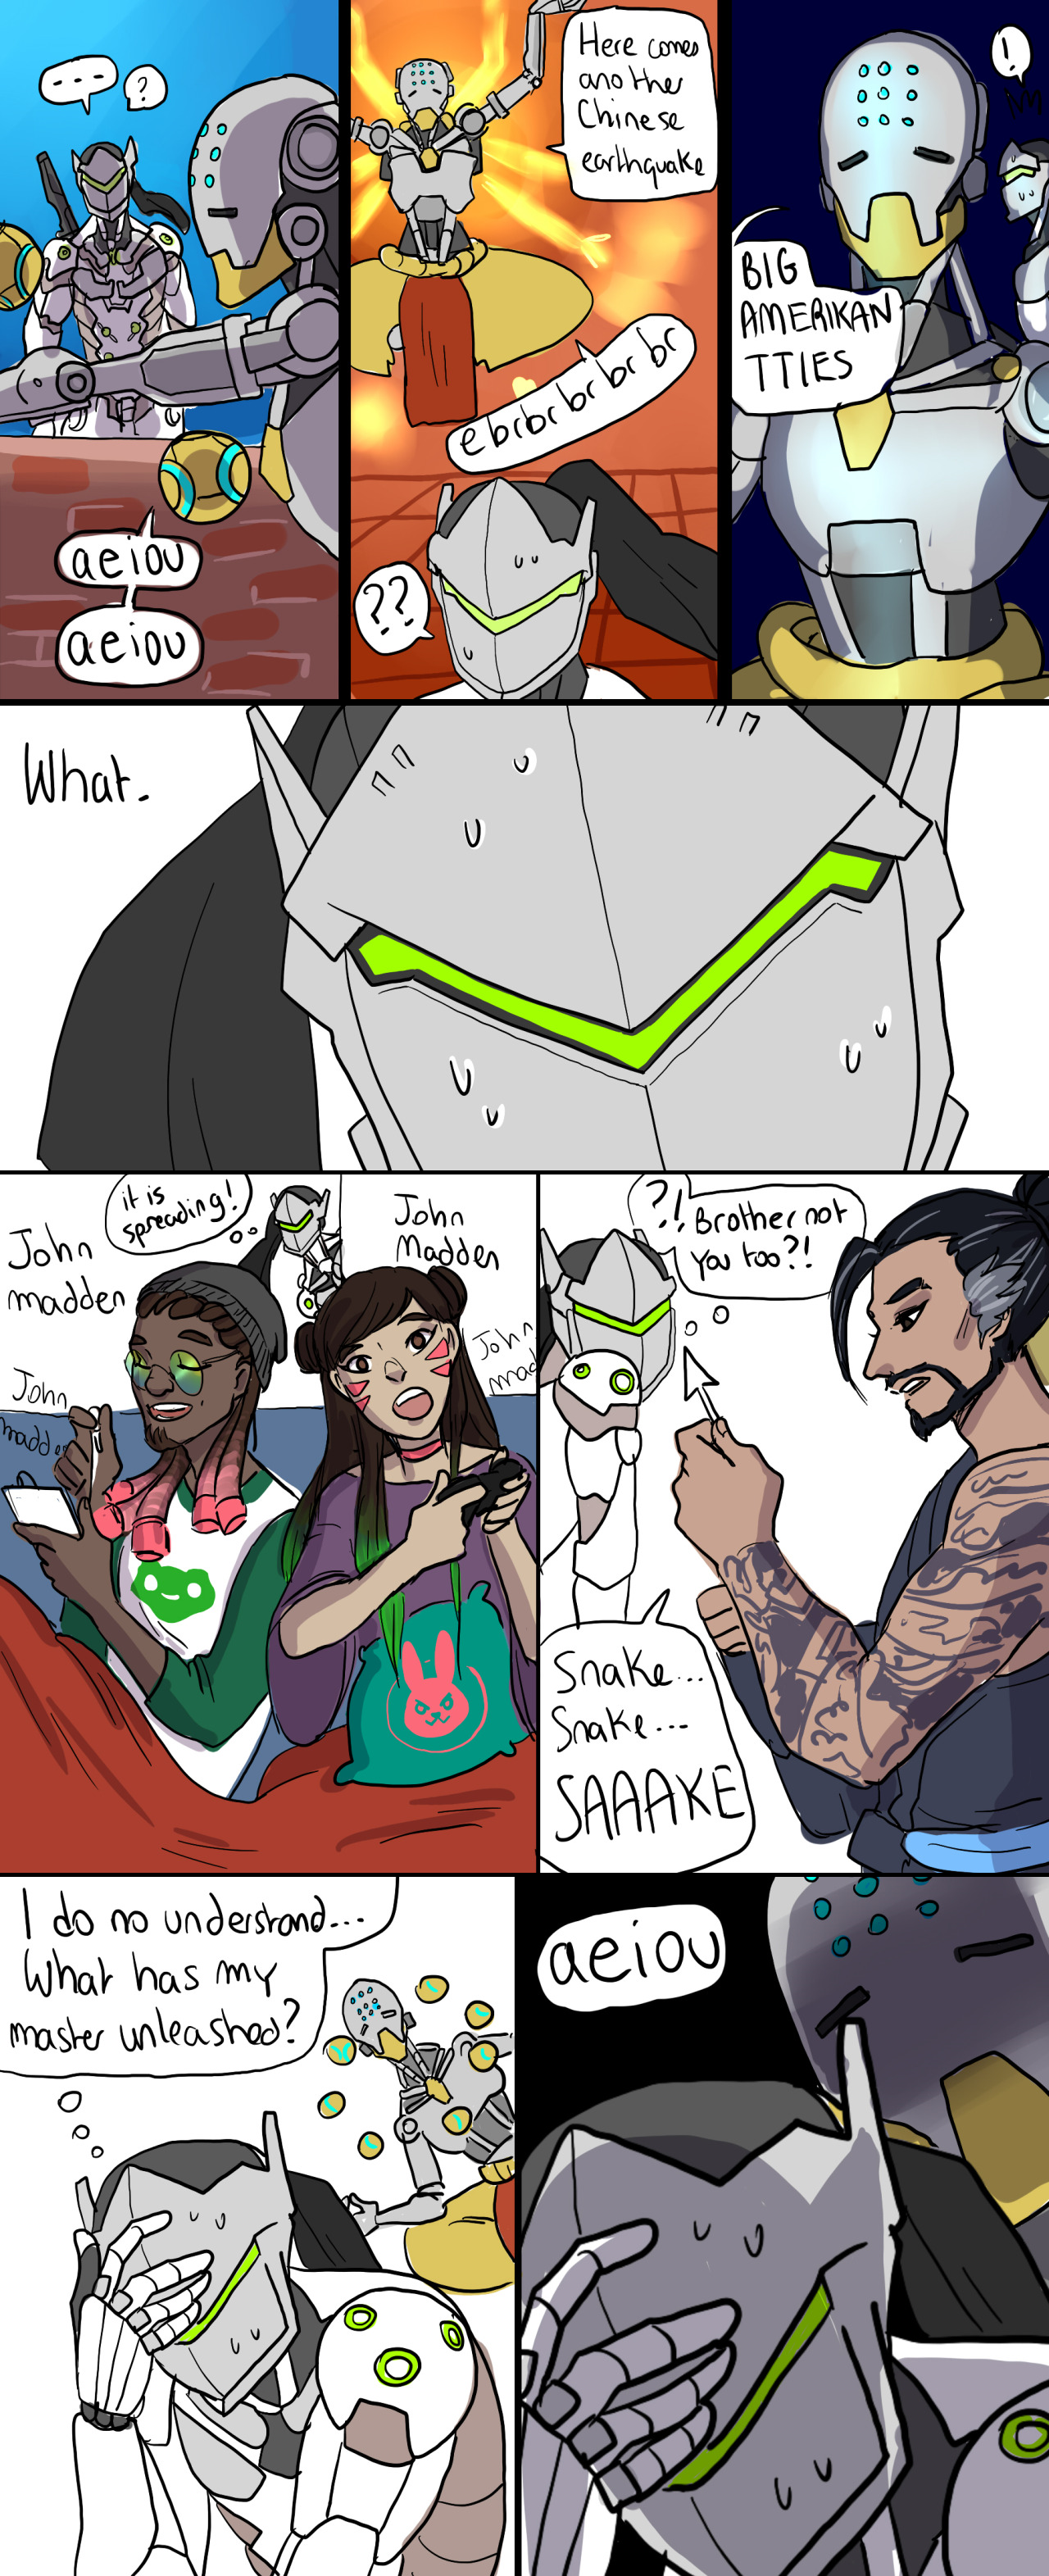 Overwatch - Ask me about my D Va fetish - Games - Facepunch